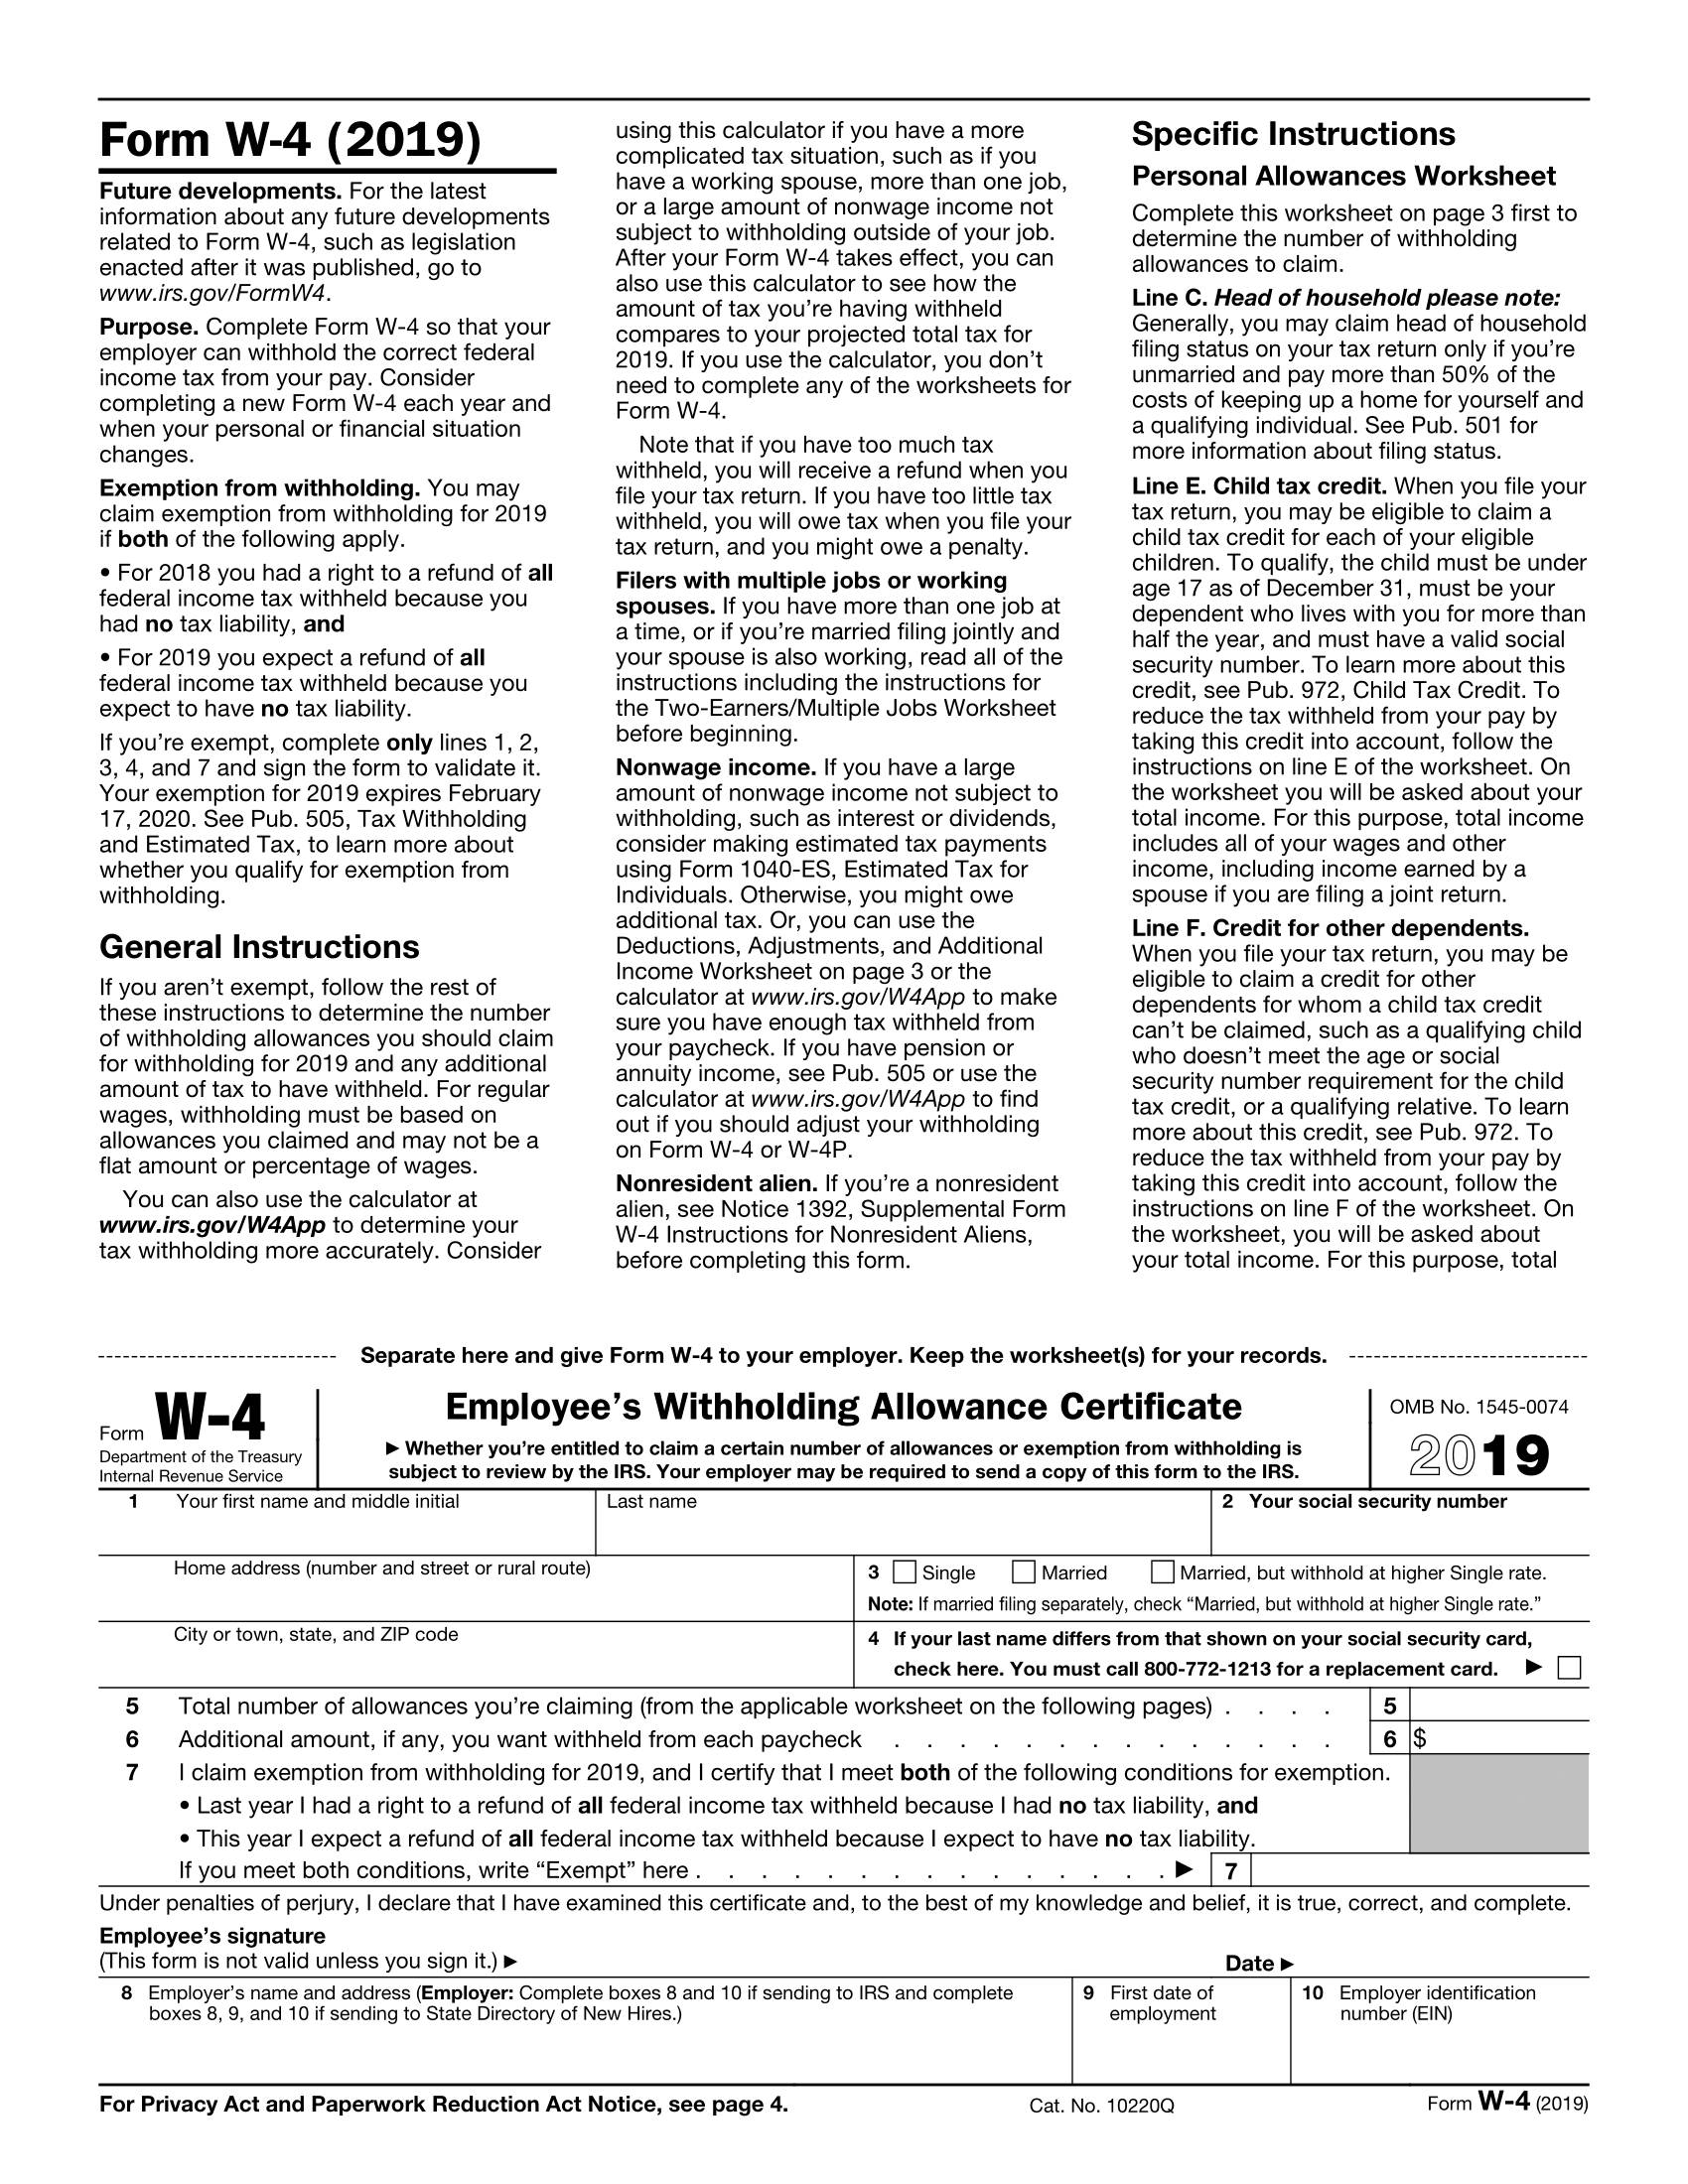 Form W-4 Page 1